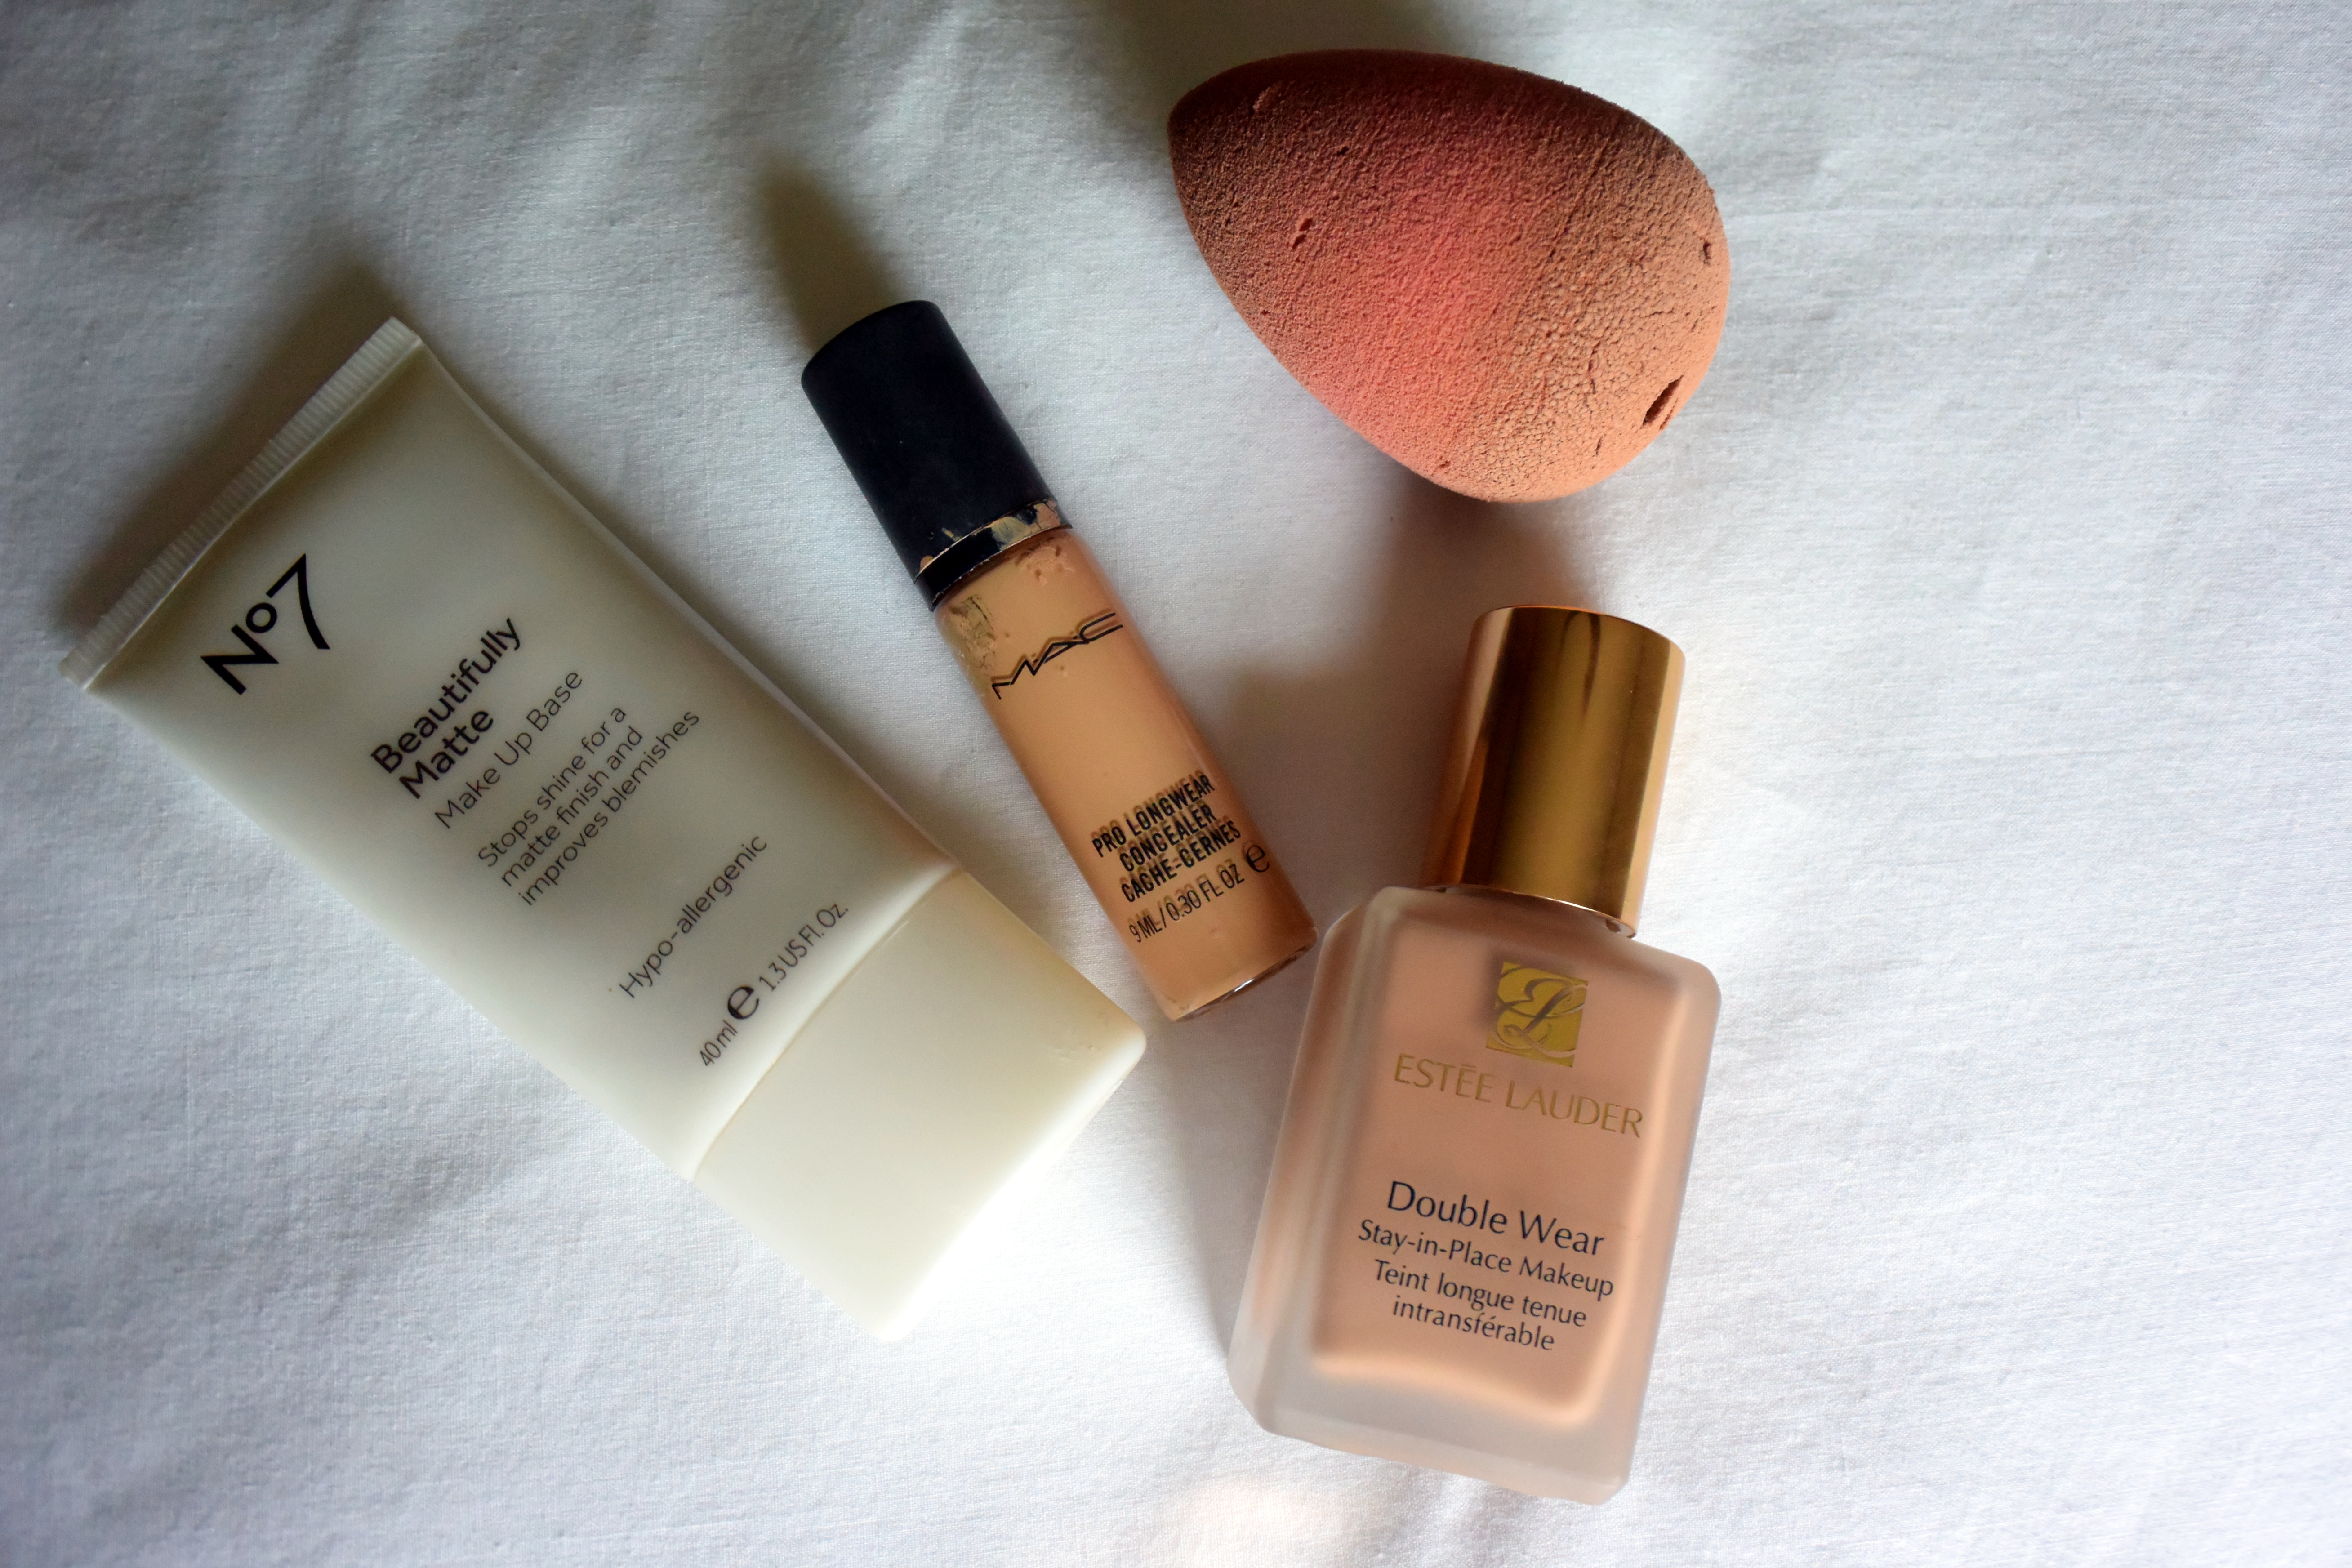 Wedding Makeup: Estee Lauder DoubleWear Stay-in-Place Foundation Review